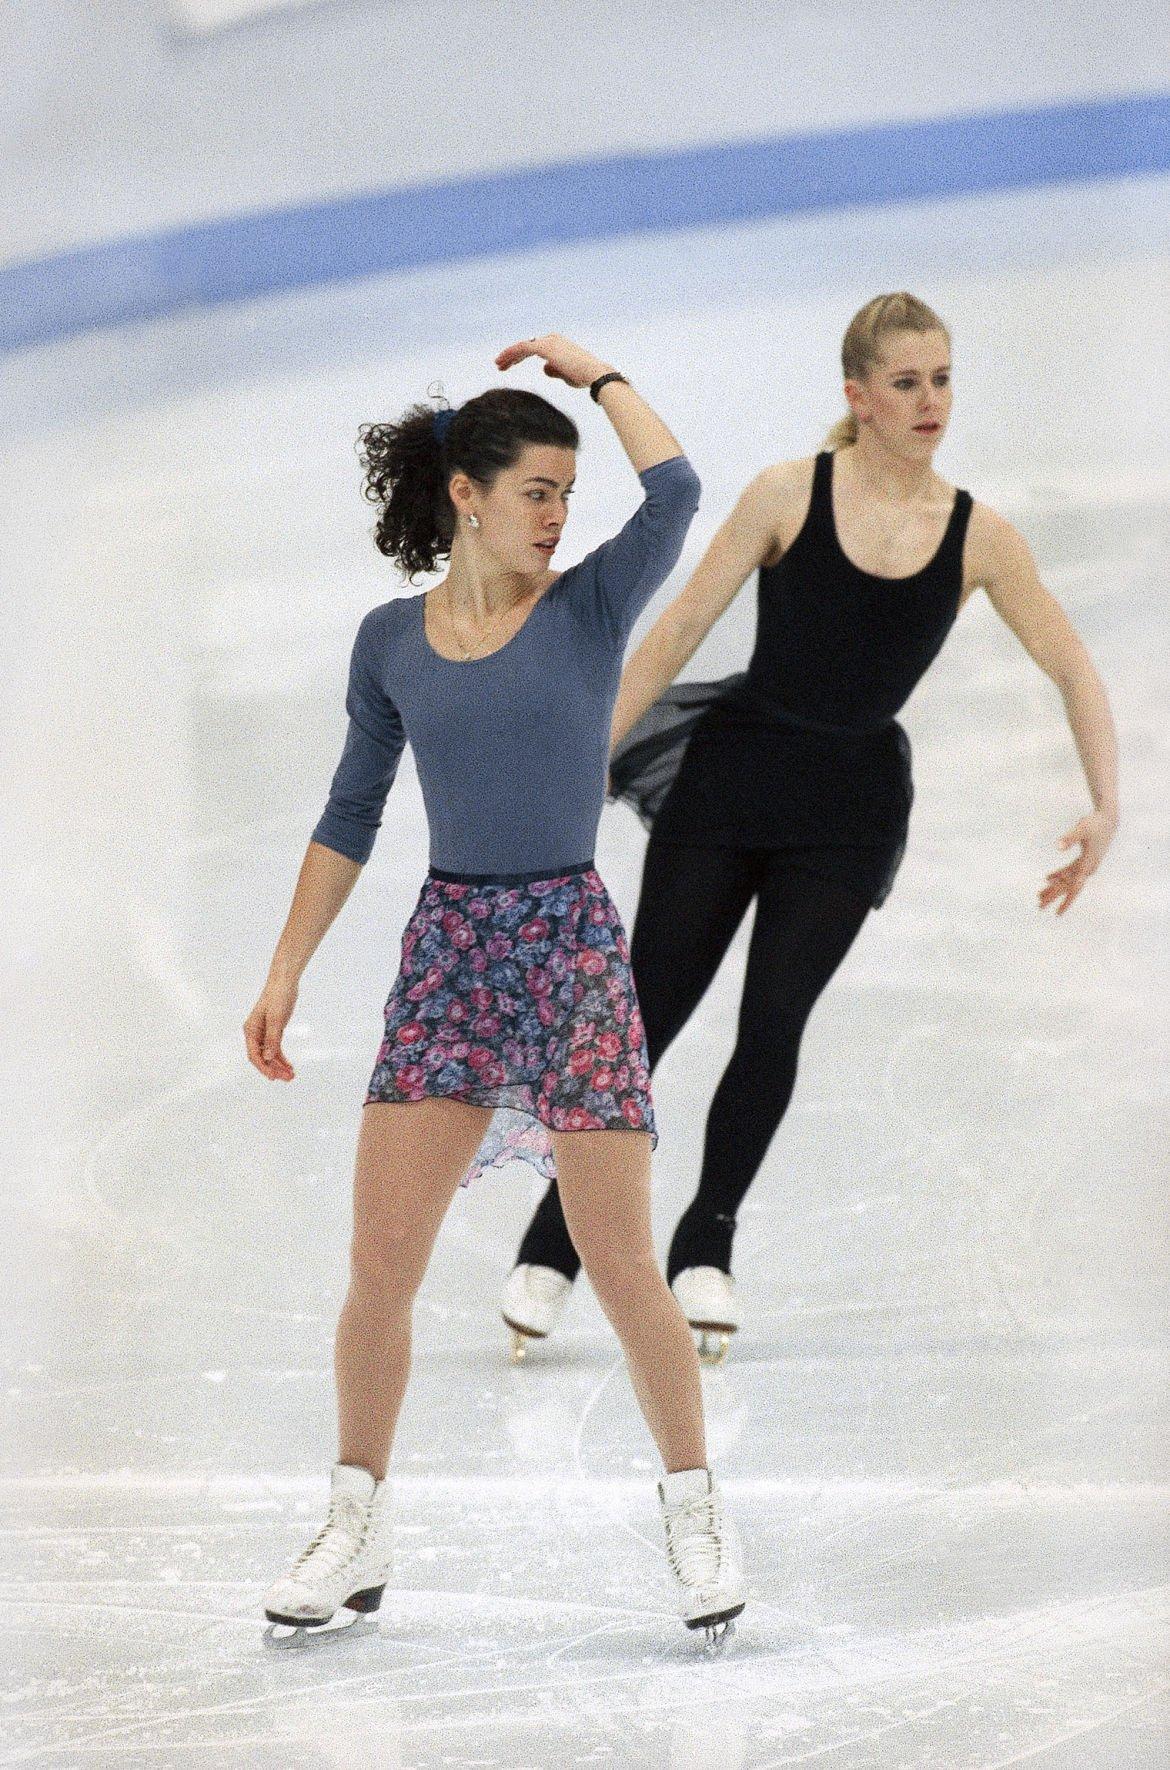 Nancy Kerrigan, Tonya Harding